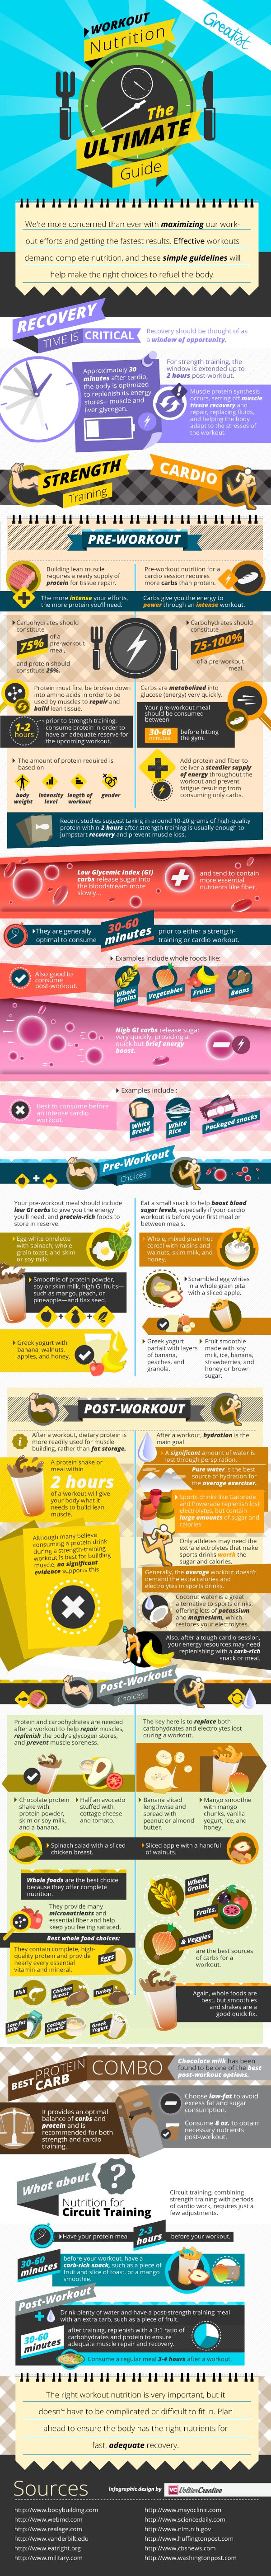 The Complete Guide to Workout Nutrition | Greatist